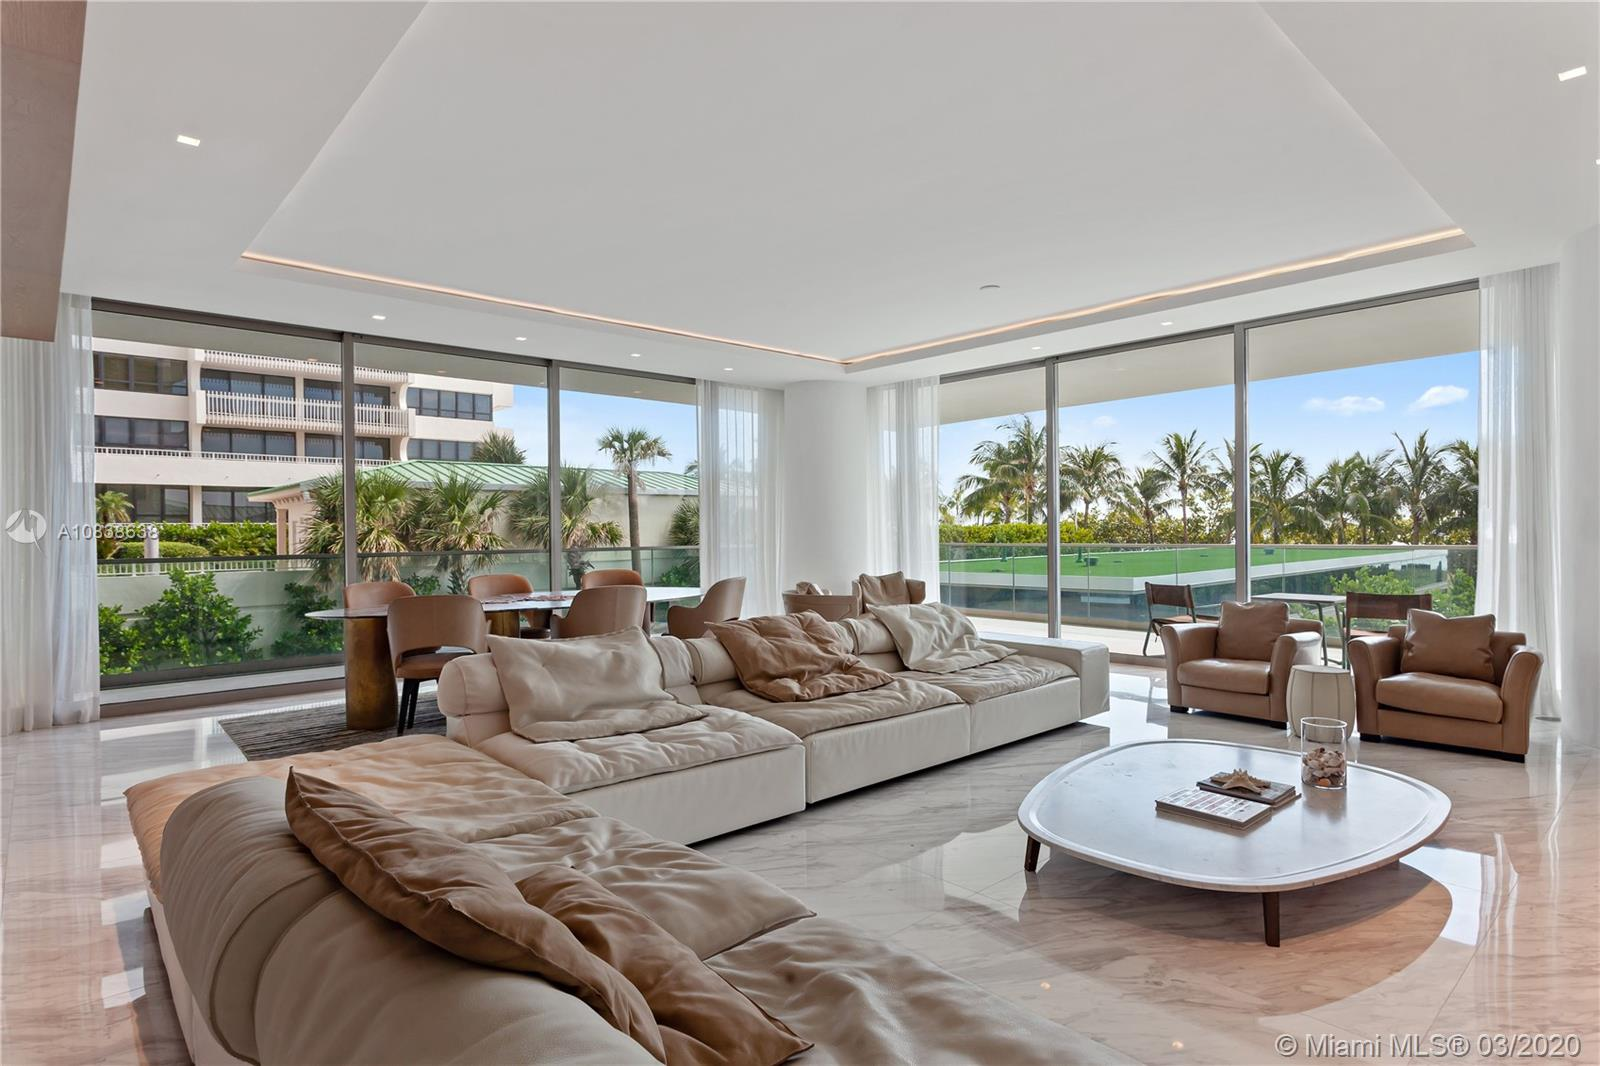 10203 Collins Ave # 201, Bal Harbour FL 33154